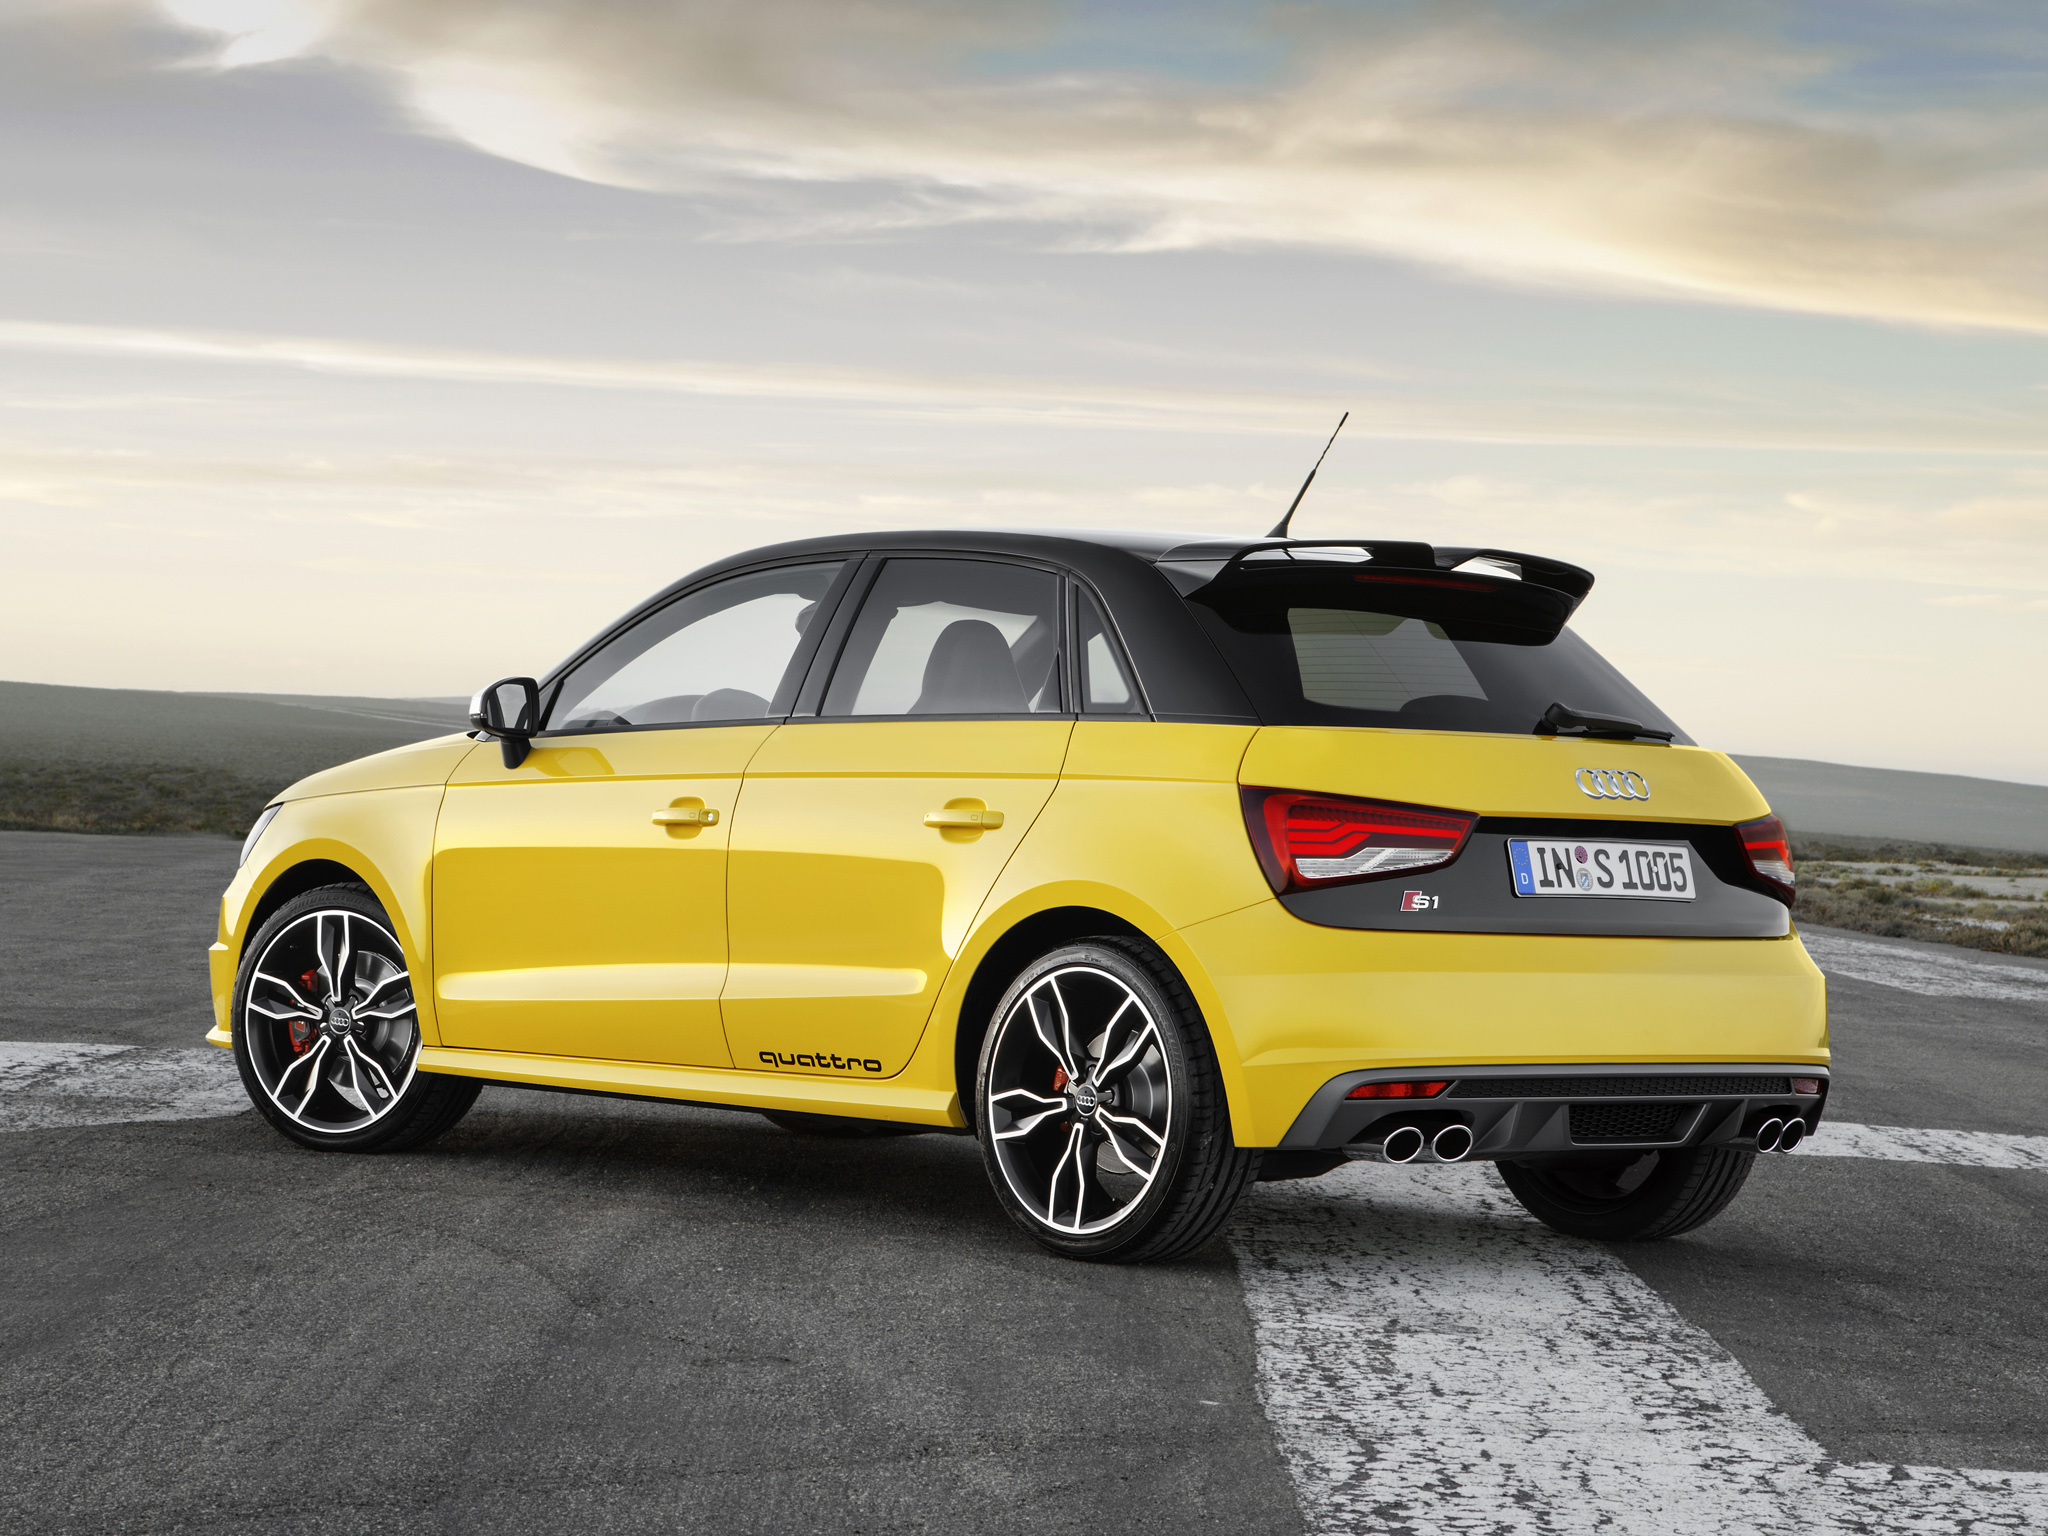 audi s1 quattro revealed reaches 100 km h in 5 8 seconds video autoevolution. Black Bedroom Furniture Sets. Home Design Ideas